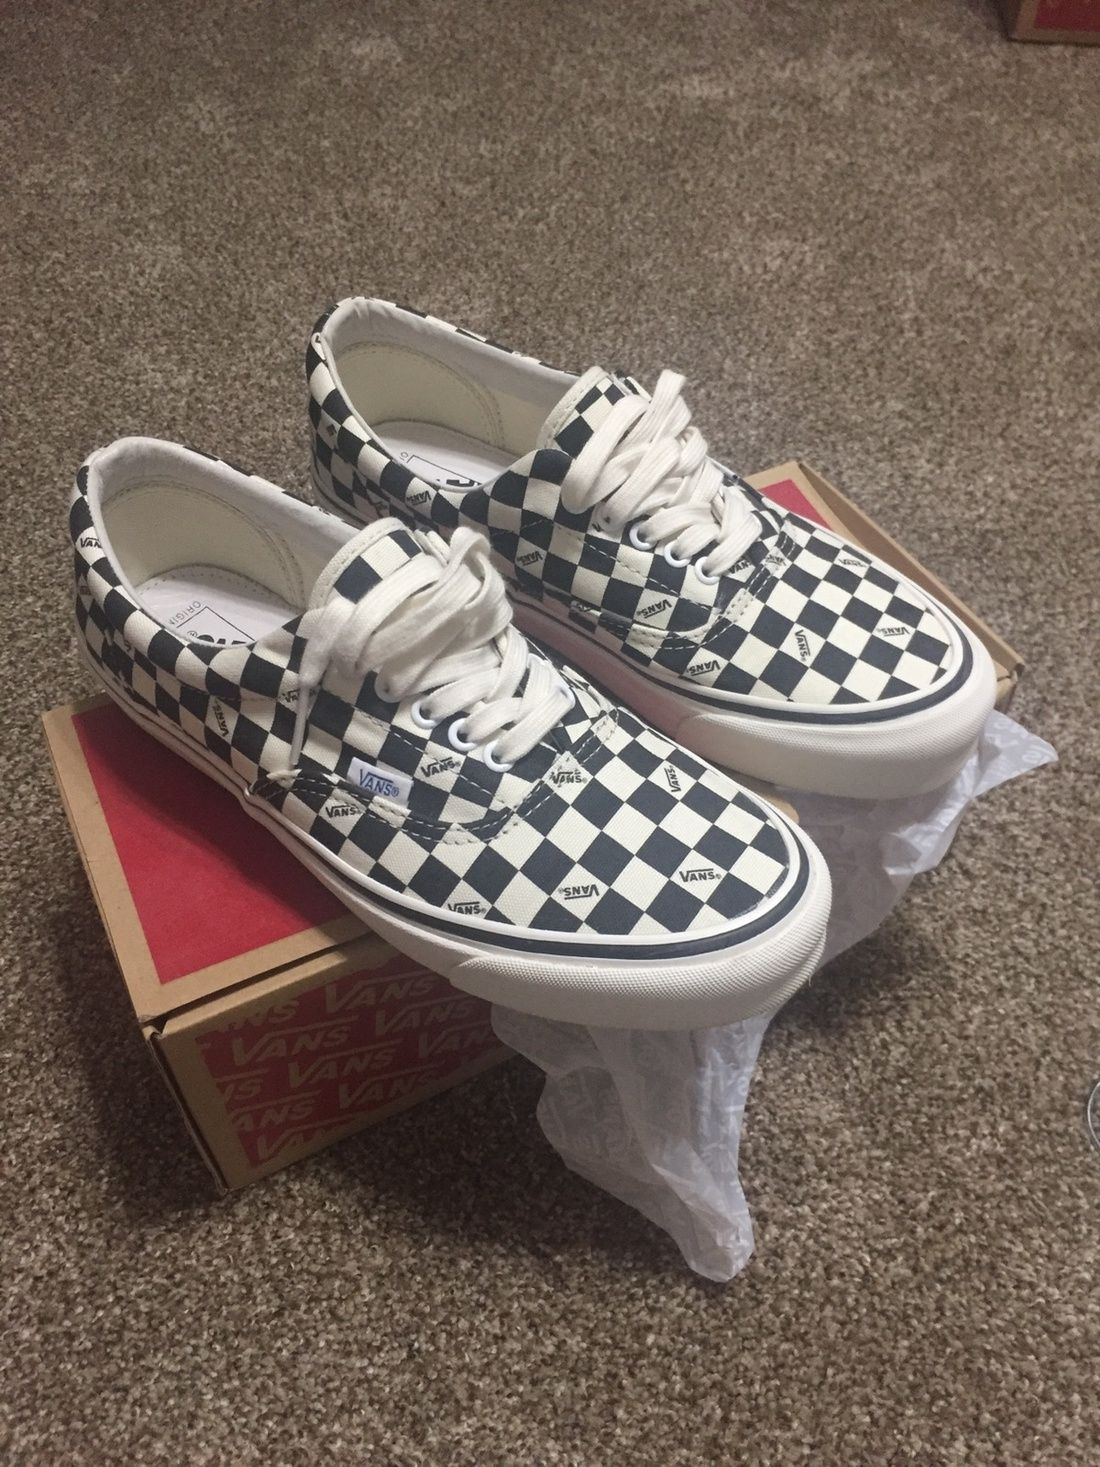 16da6c32735e Vans Vans Era Lx Checkerboard Size 10  600 - Grailed